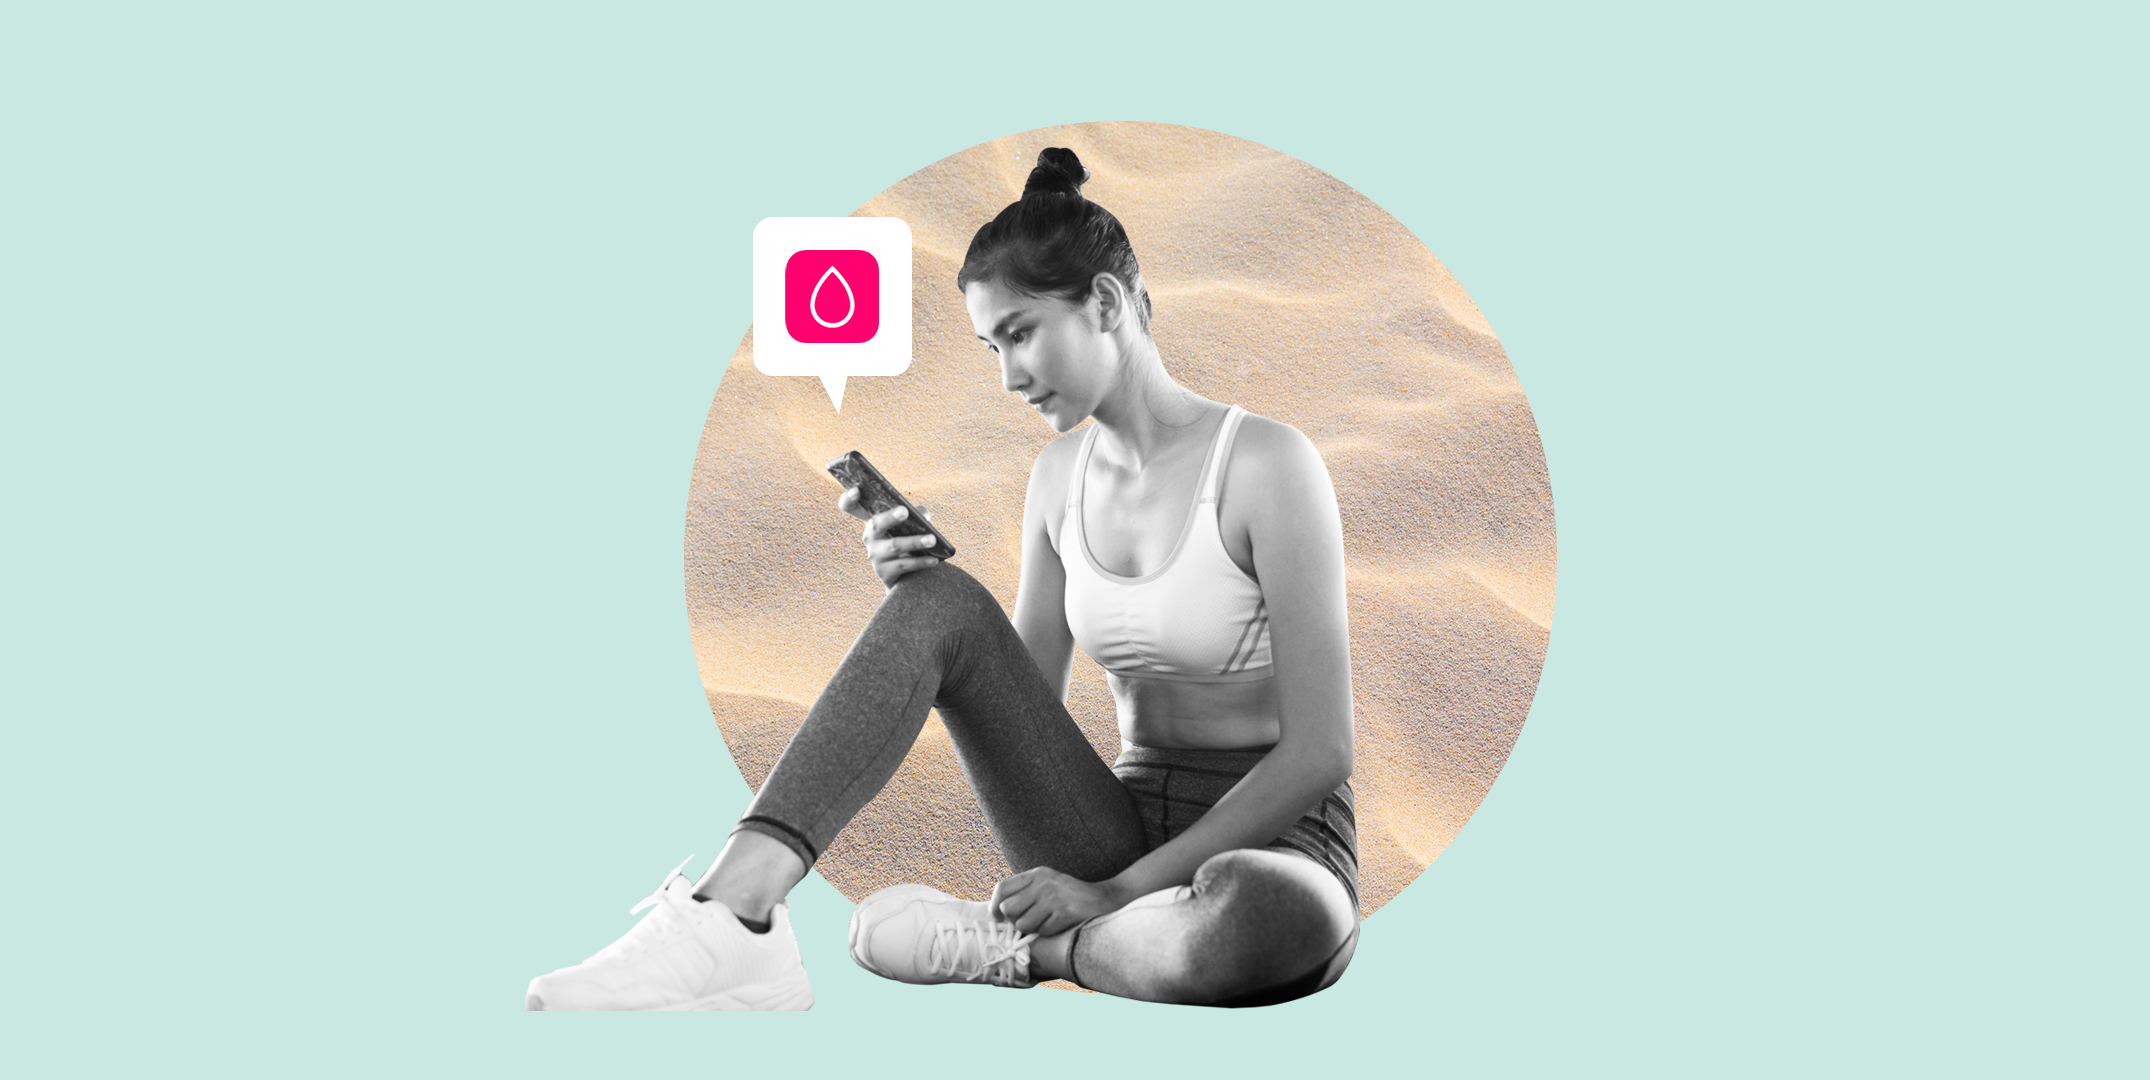 This Fitness App Made Me So Sore I Couldn't Sleep—But I'd Do It All Again